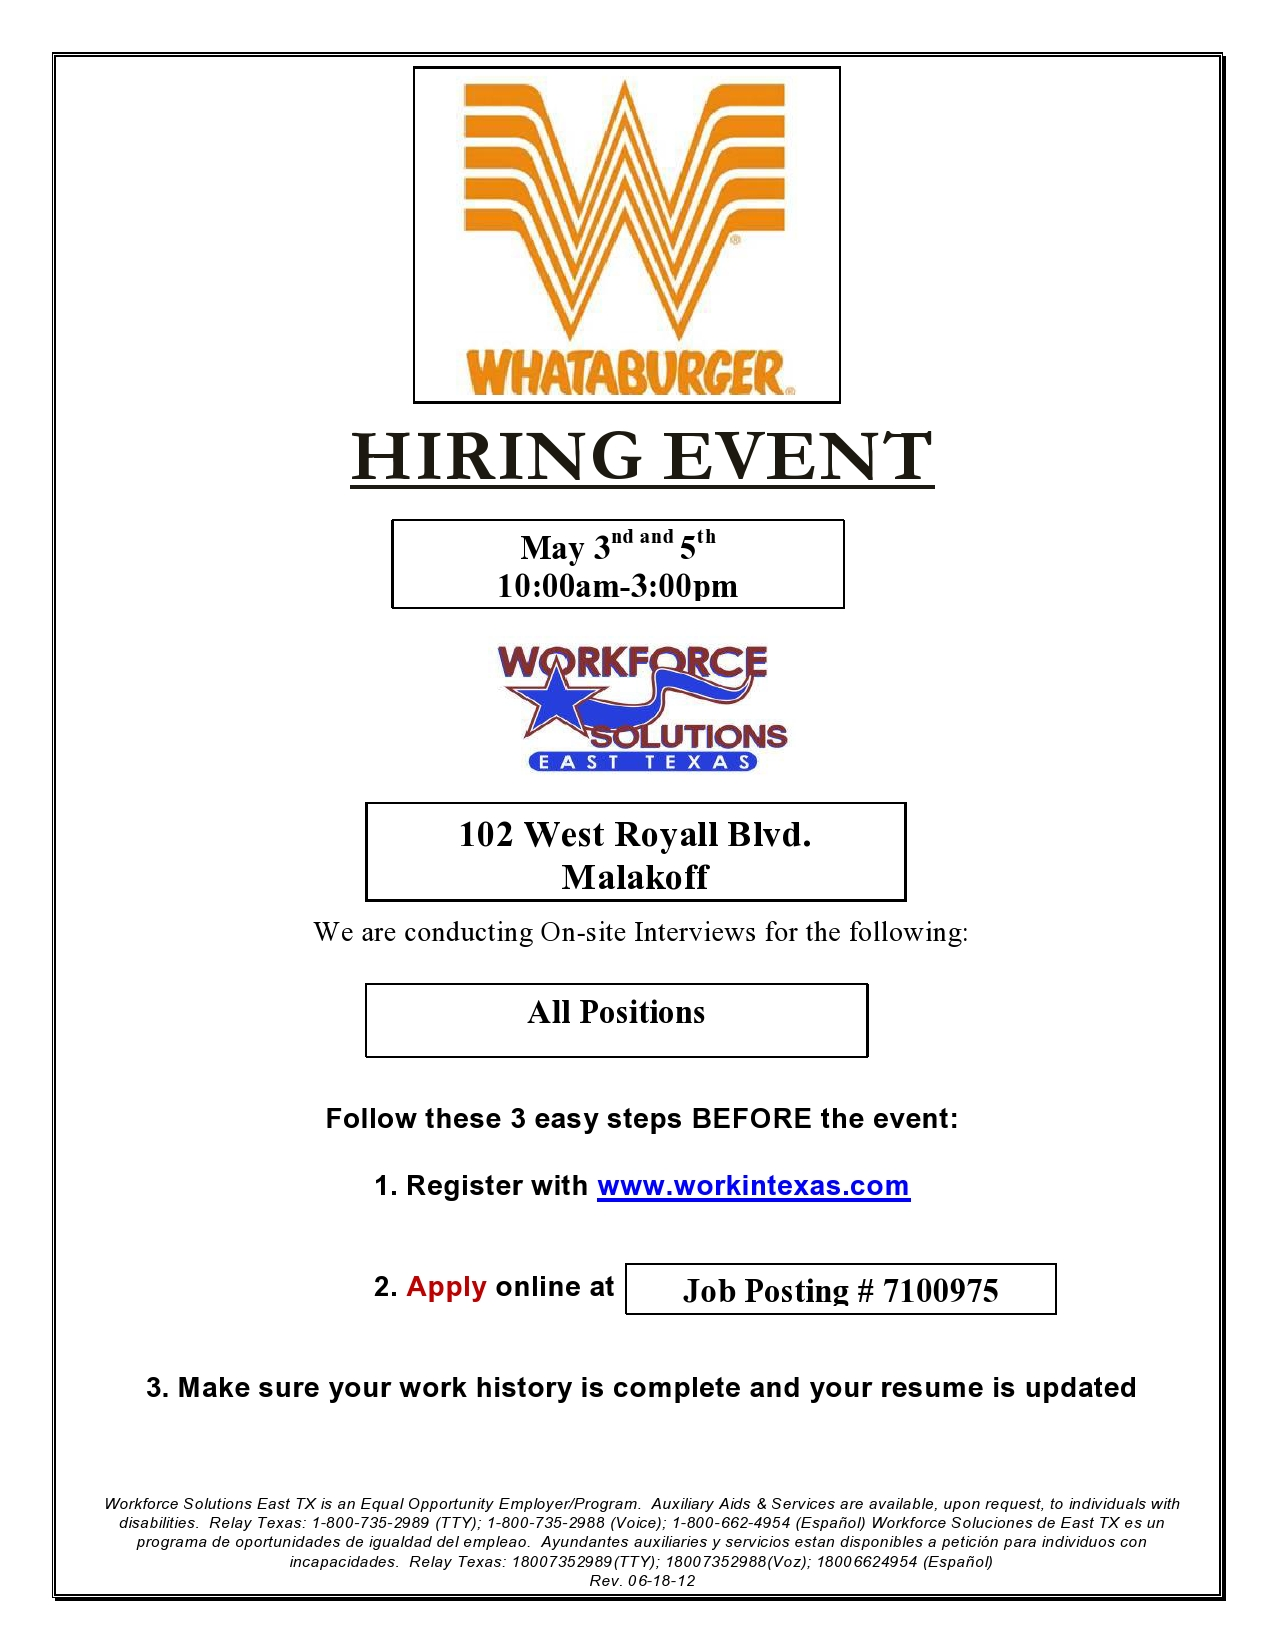 Whataburger schedules hiring events in Malakoff